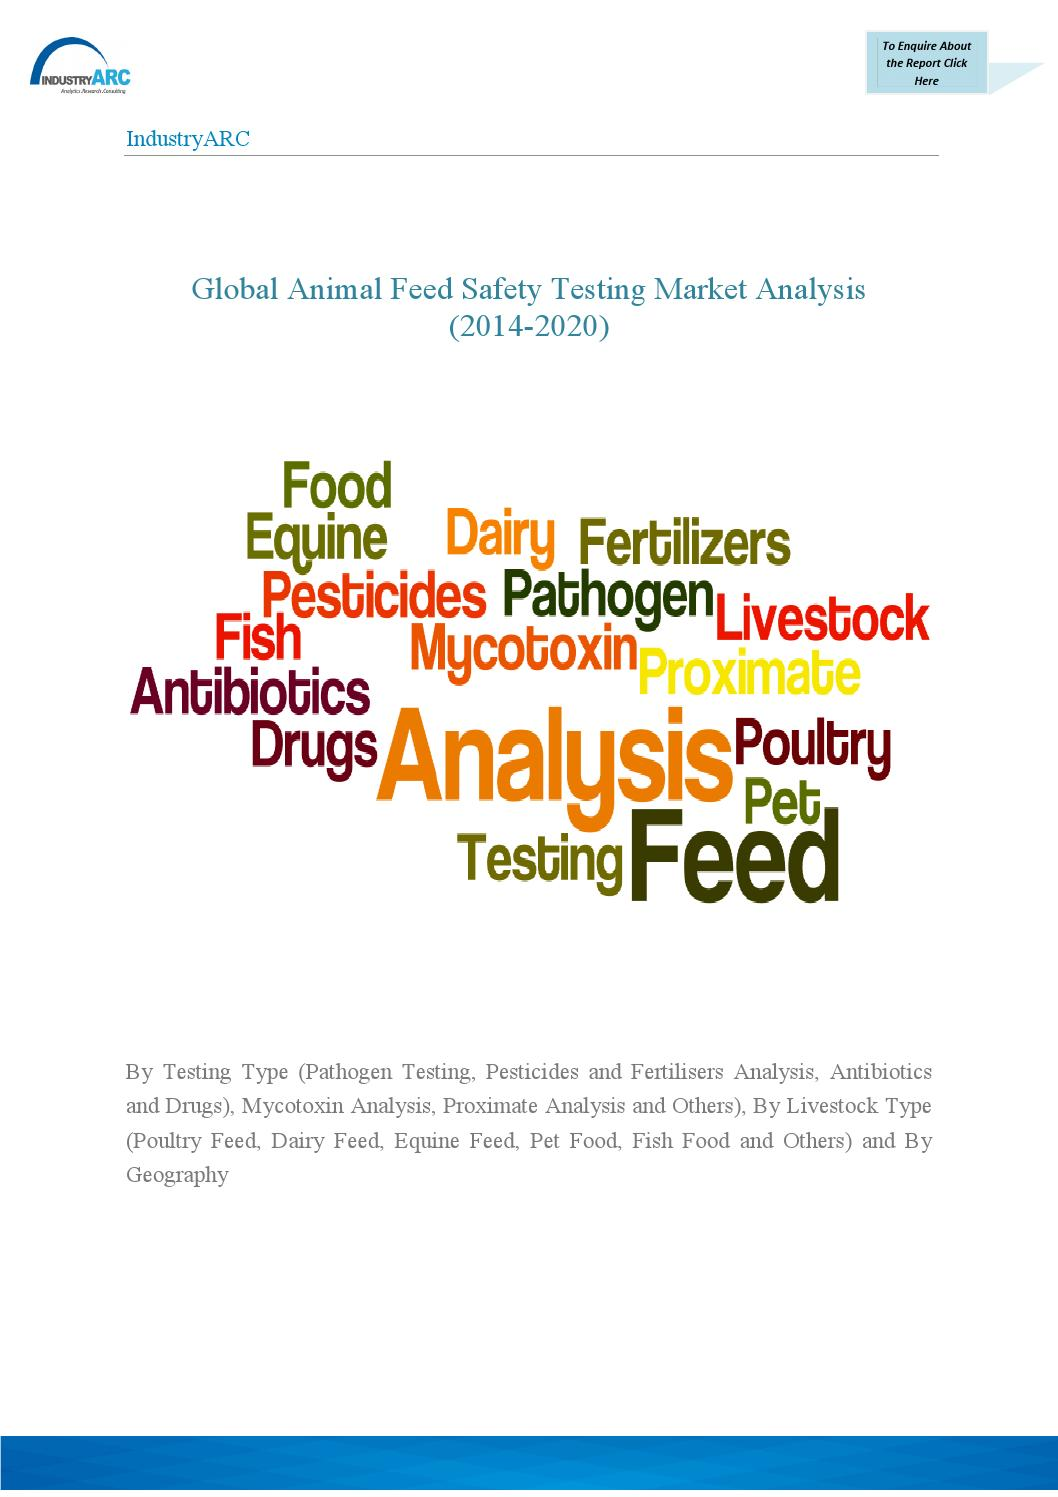 Proximate Analysis Of Poultry Feed Ingredients